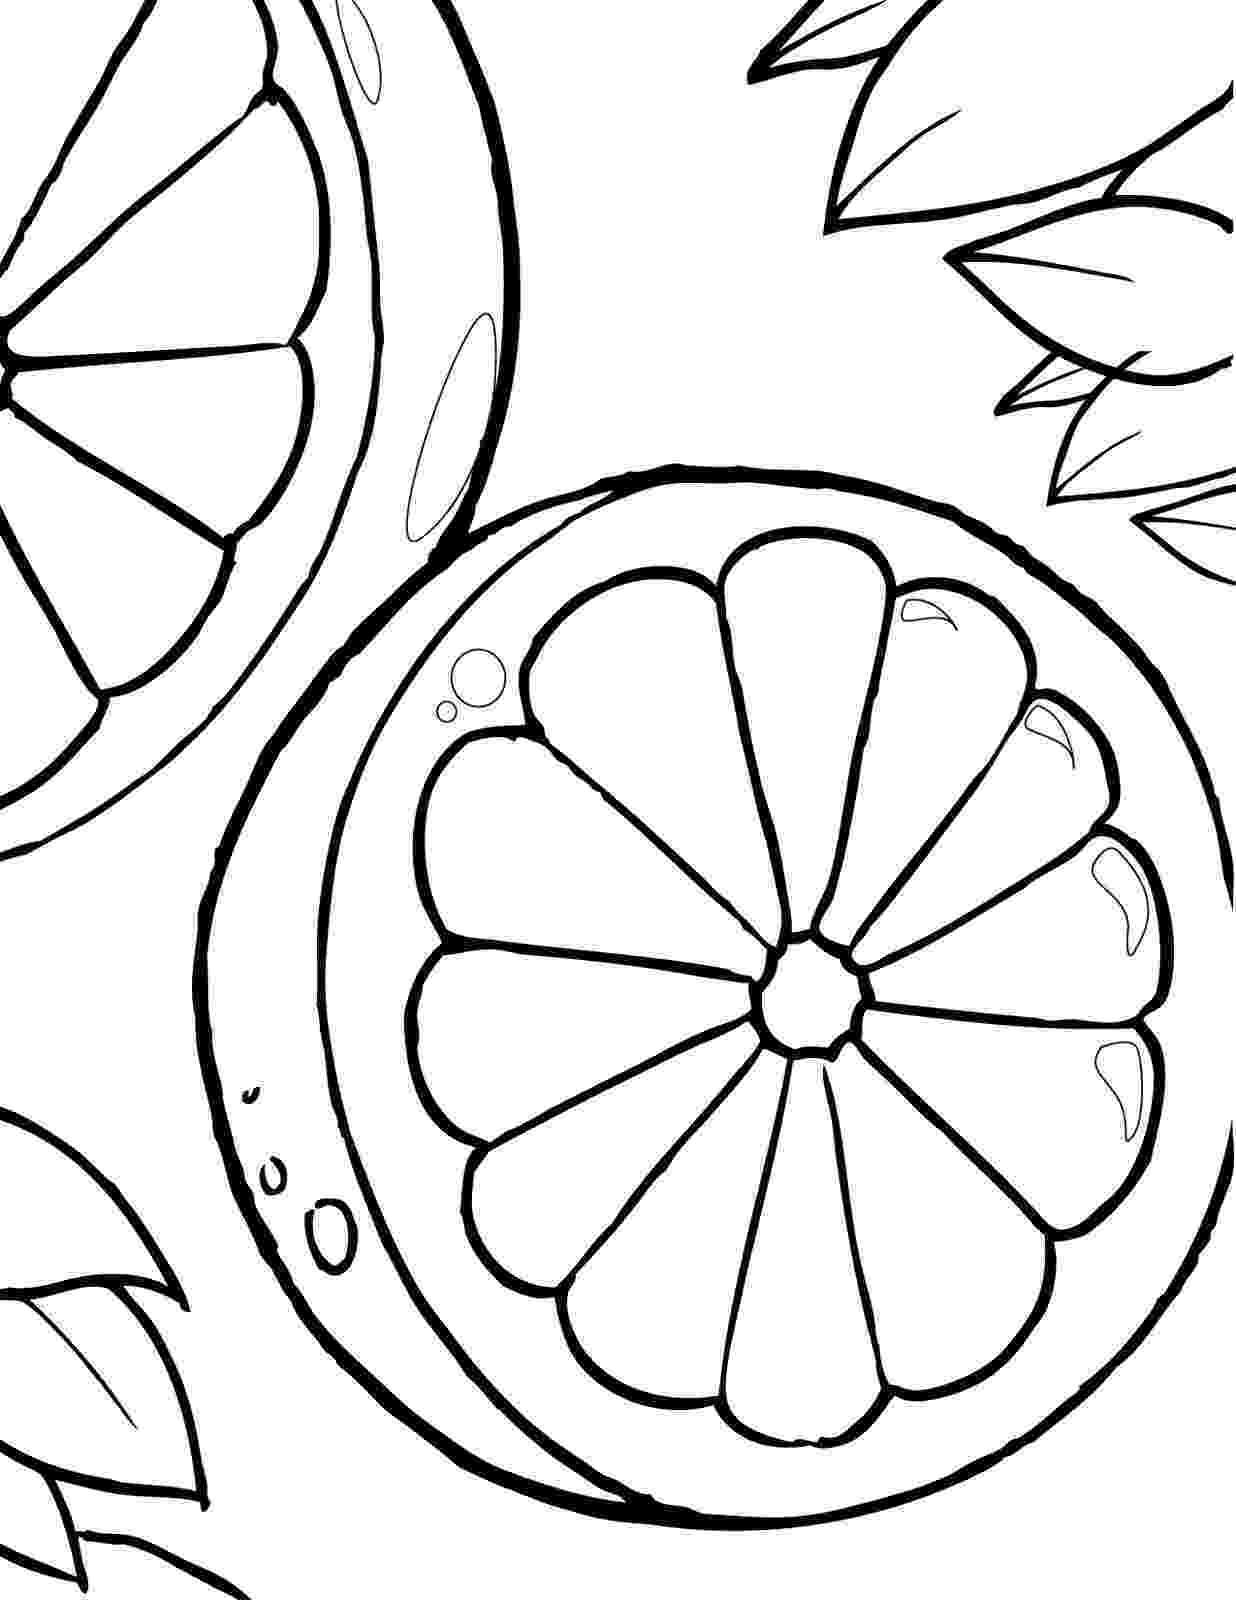 coloring paghes print monster high coloring pages for free or download paghes coloring